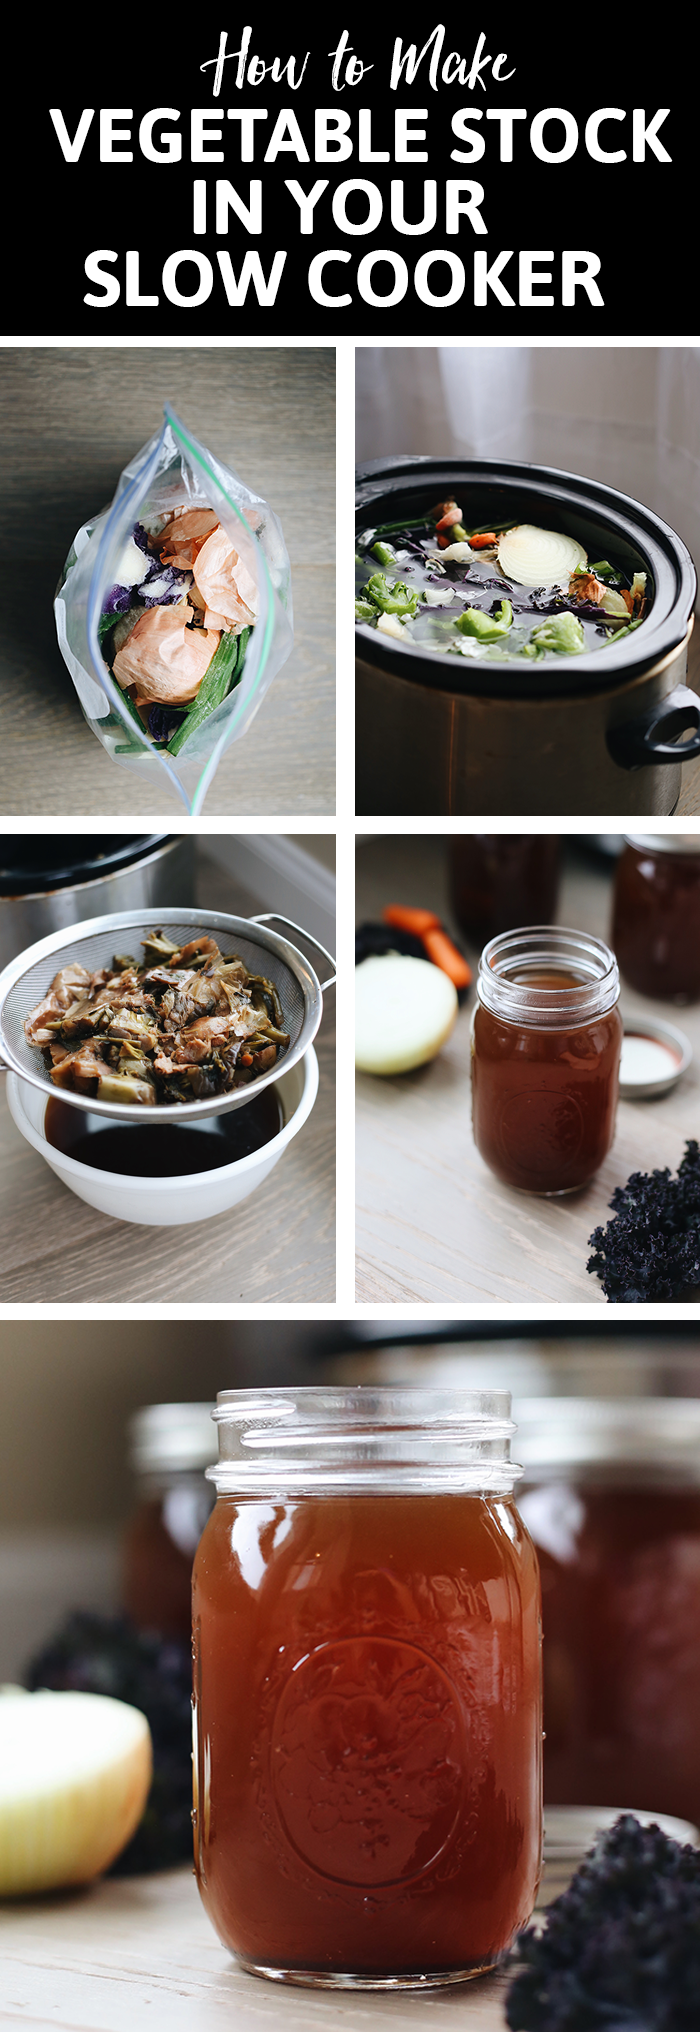 This tutorial will teach you how to make vegetable stock